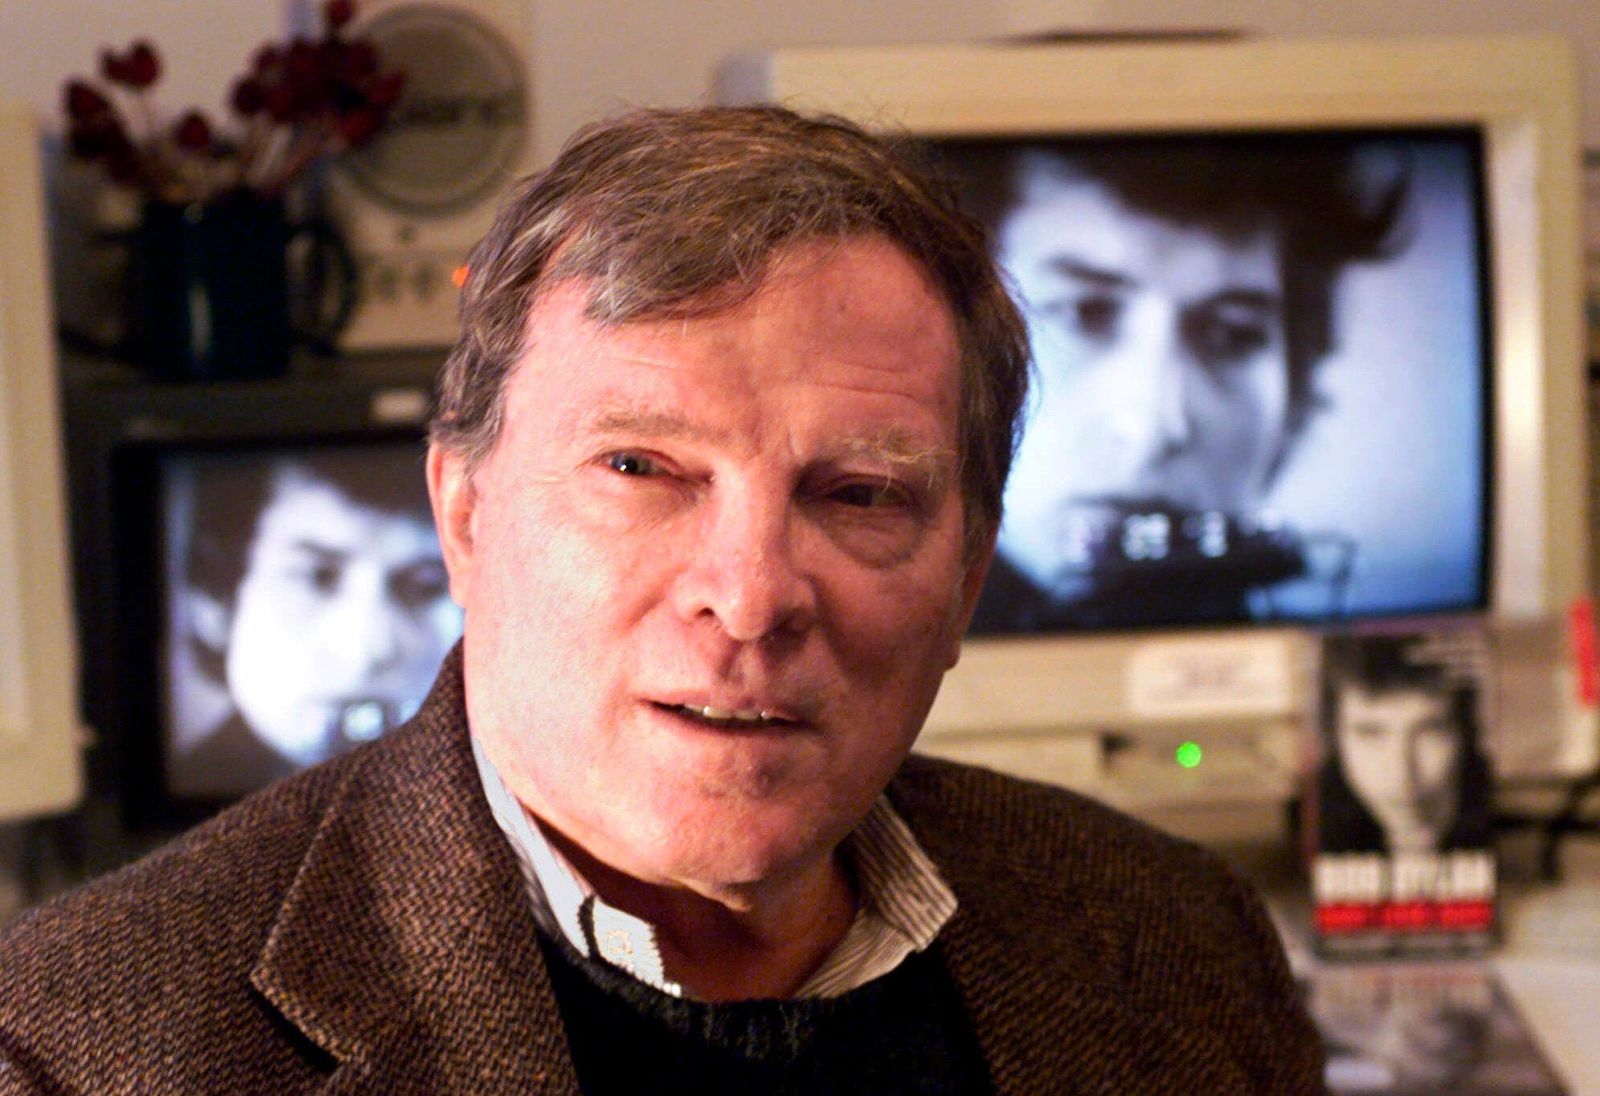 CORRECTS TO FIRST NAME TO FRAZER INSTEAD OF FRANK PENNEBAKER  FILE - In this Jan. 27, 2000 file photo, documentary filmmaker D.A. Pennebaker is flanked by 35-year-old images of Bob Dylan as Pennebaker sits in his New York editing suite. Oscar-winning documentary maker Pennebaker has died at the age of 94. Frazer Pennebaker said in an email his father died Thursday, Aug. 1, 2019, at his Long Island home from natural causes. (AP Photo/Kathy Willens, File)